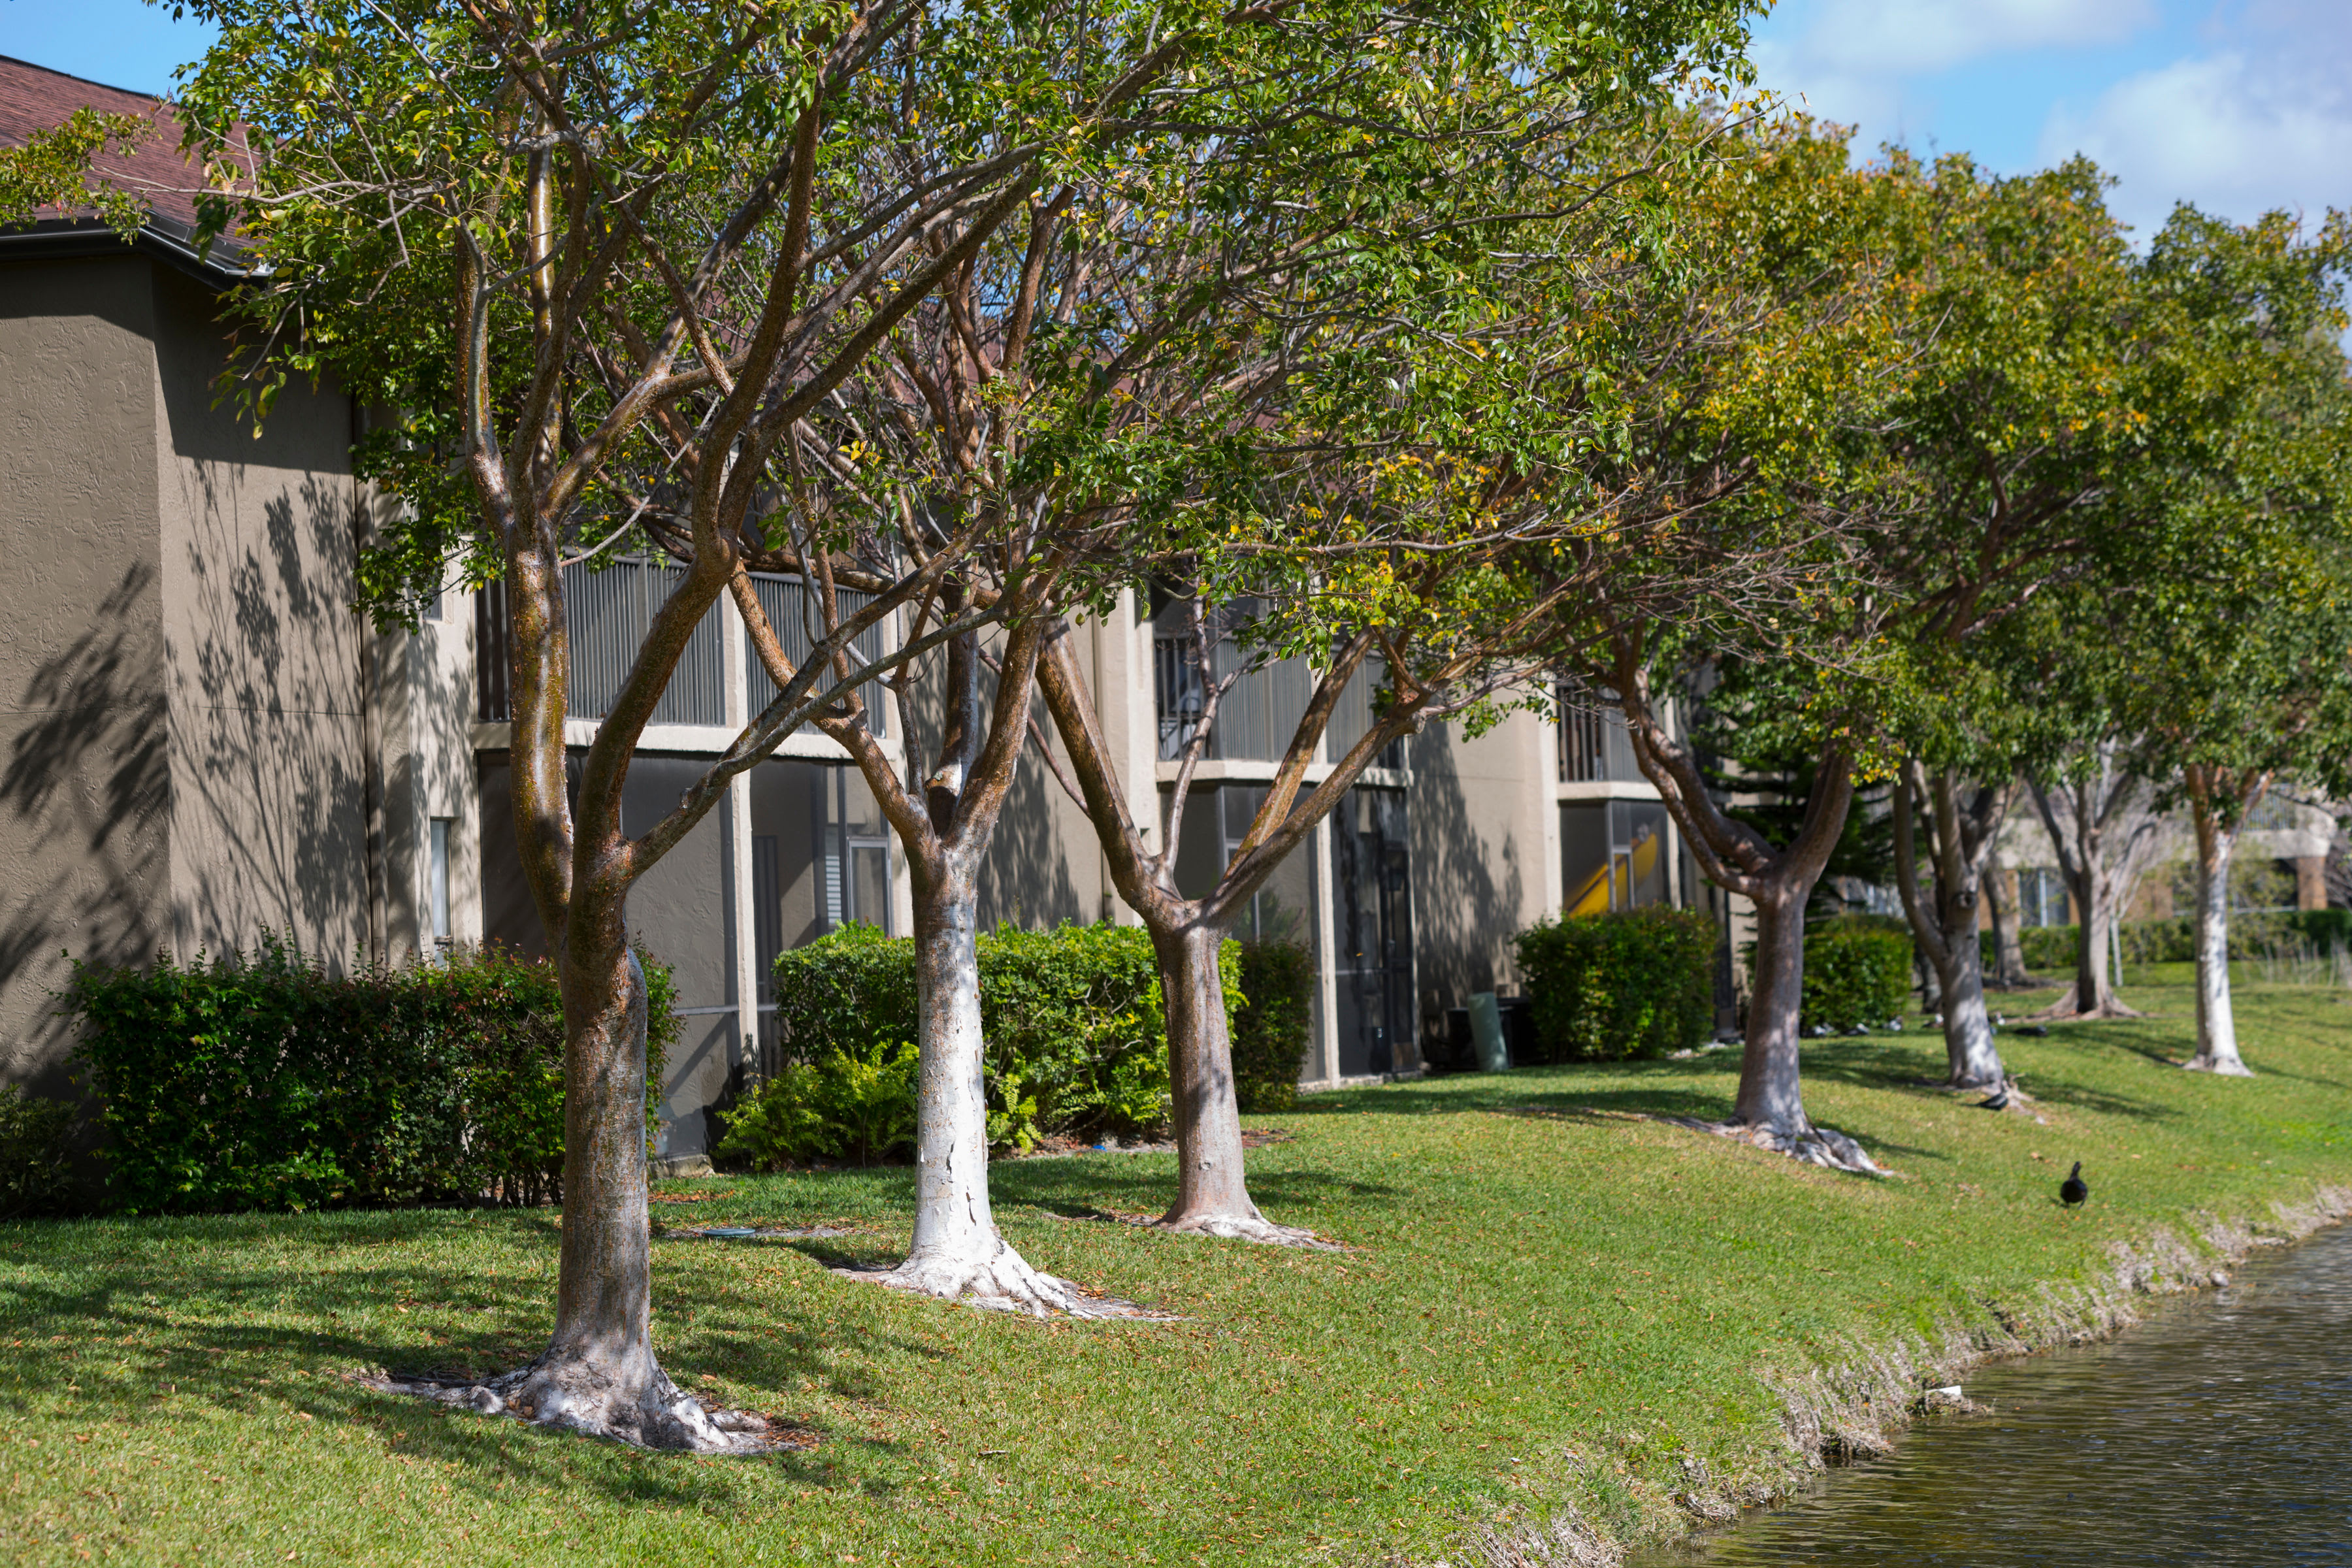 Resident buildings along the shore of our onsite lake at Siena Apartments in Plantation, Florida